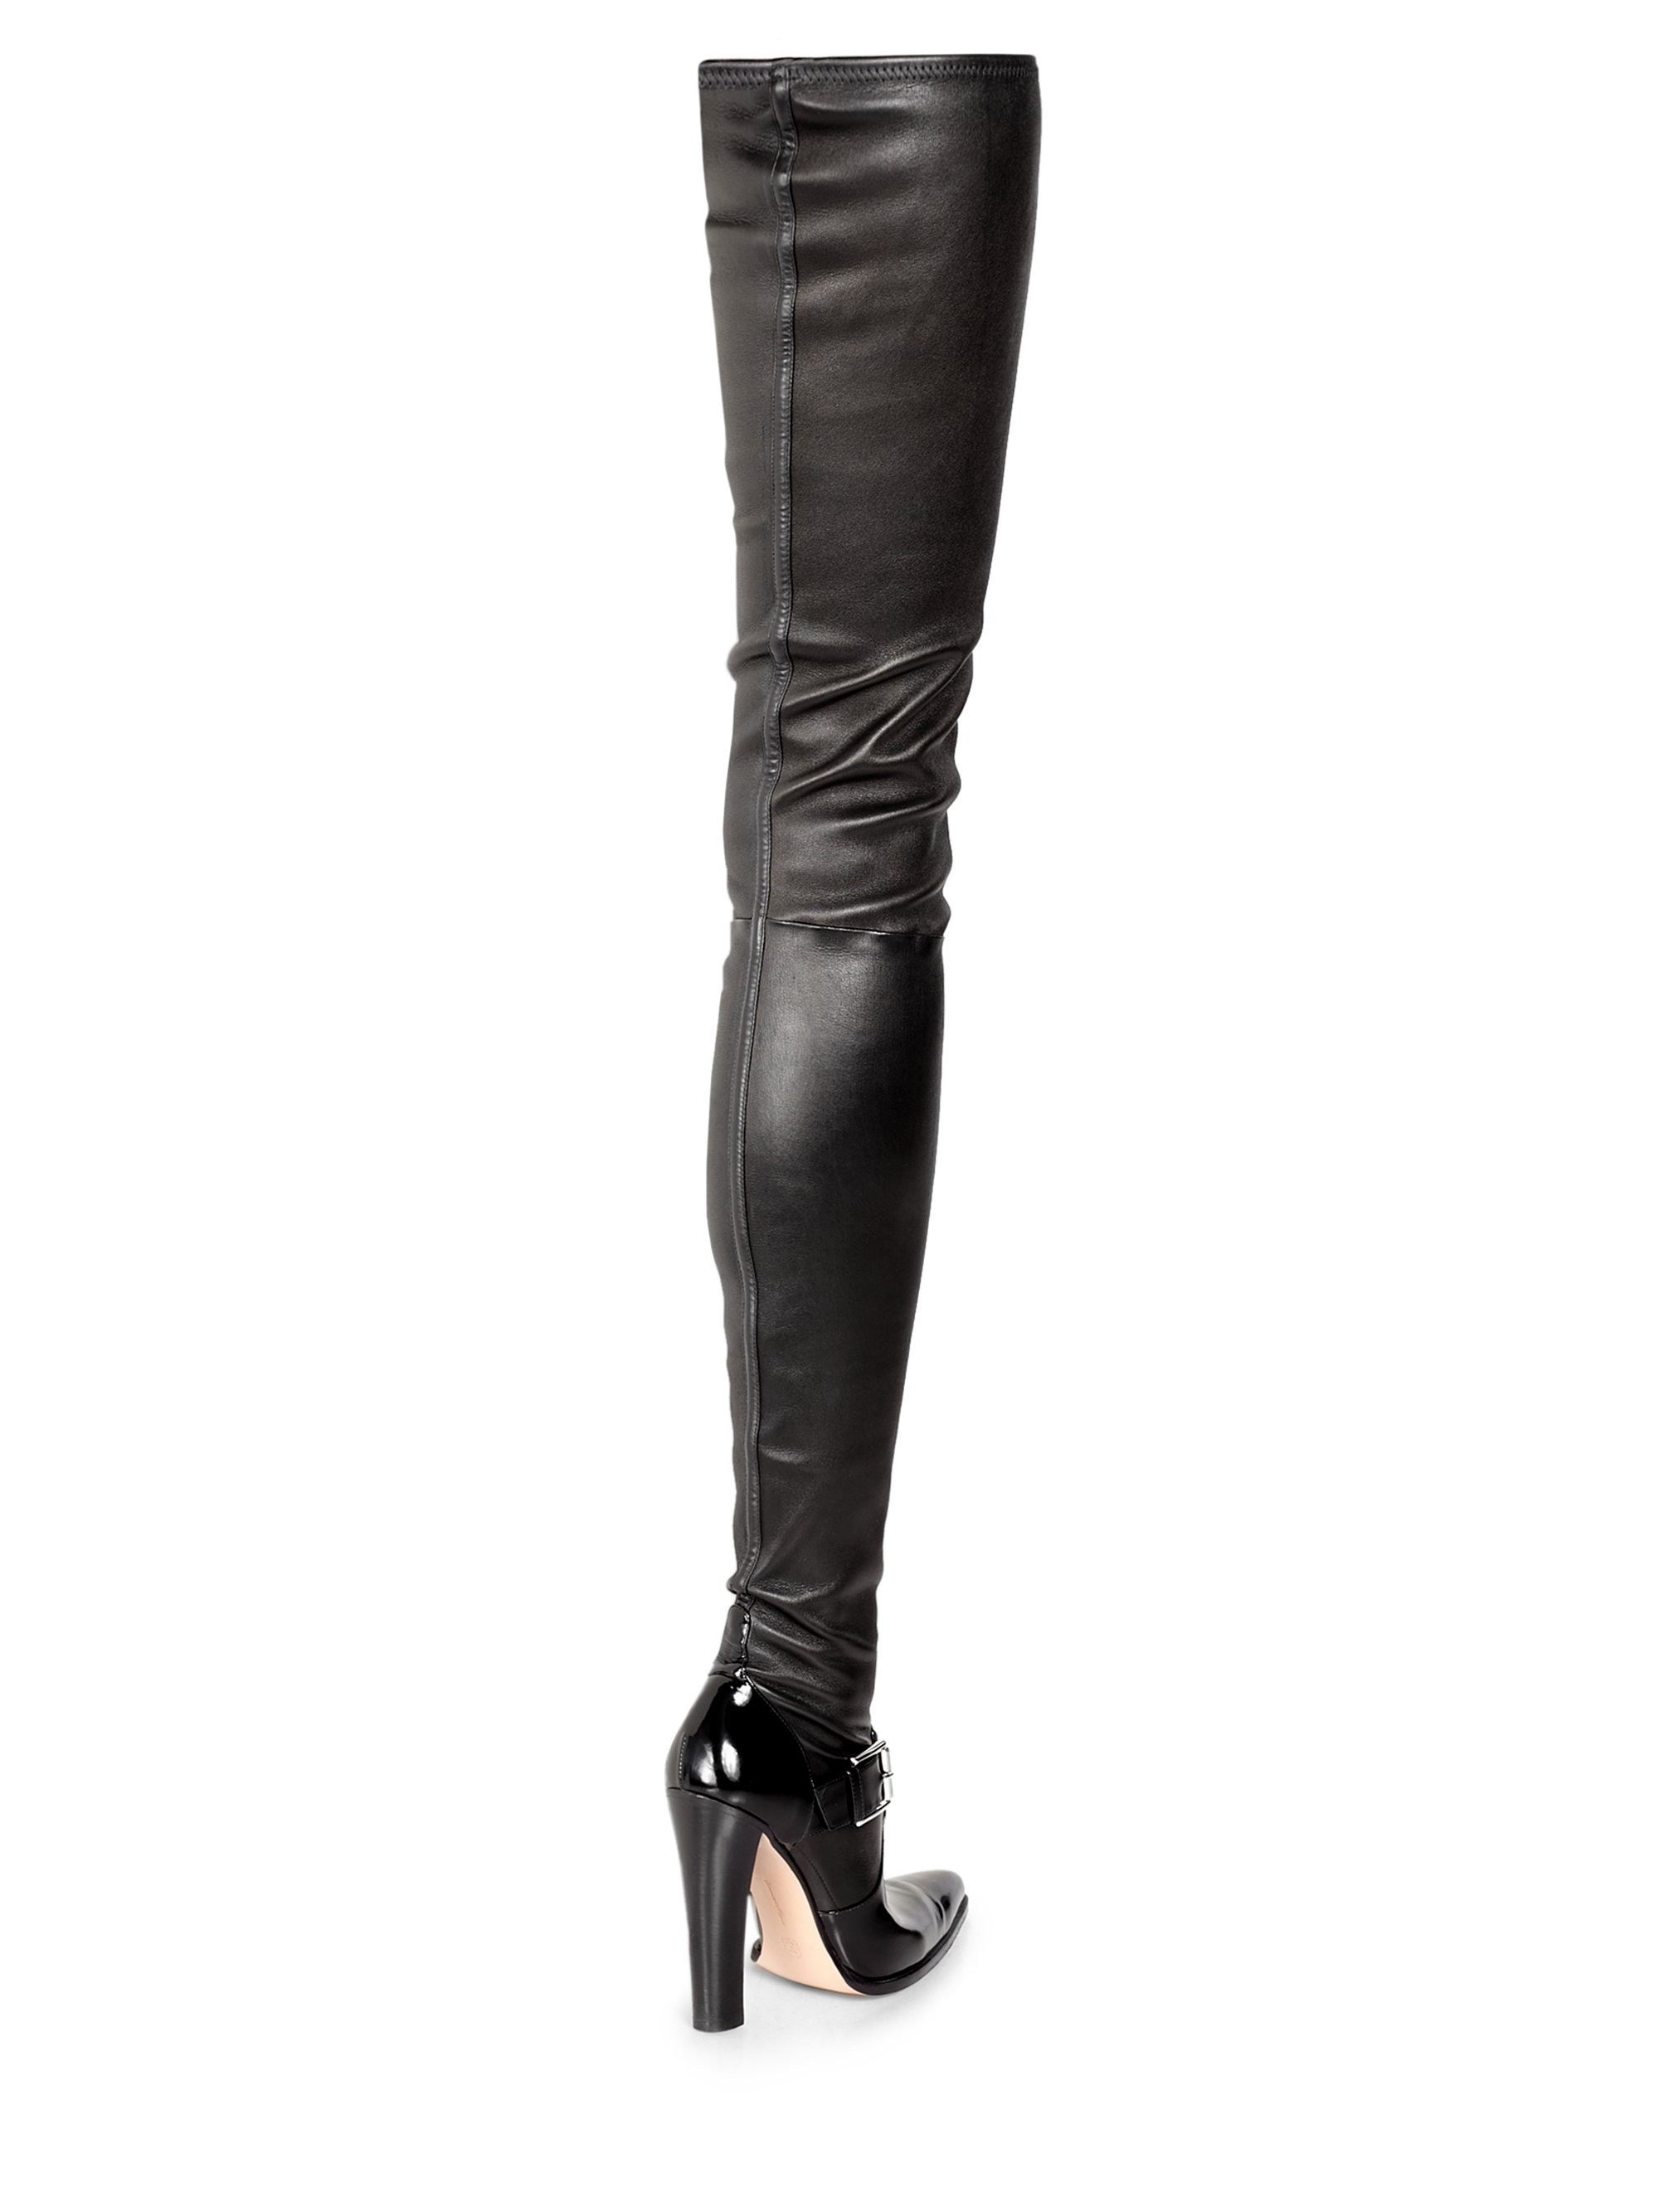 Altuzarra Stretch Leather Thighhigh Boots in Black | Lyst